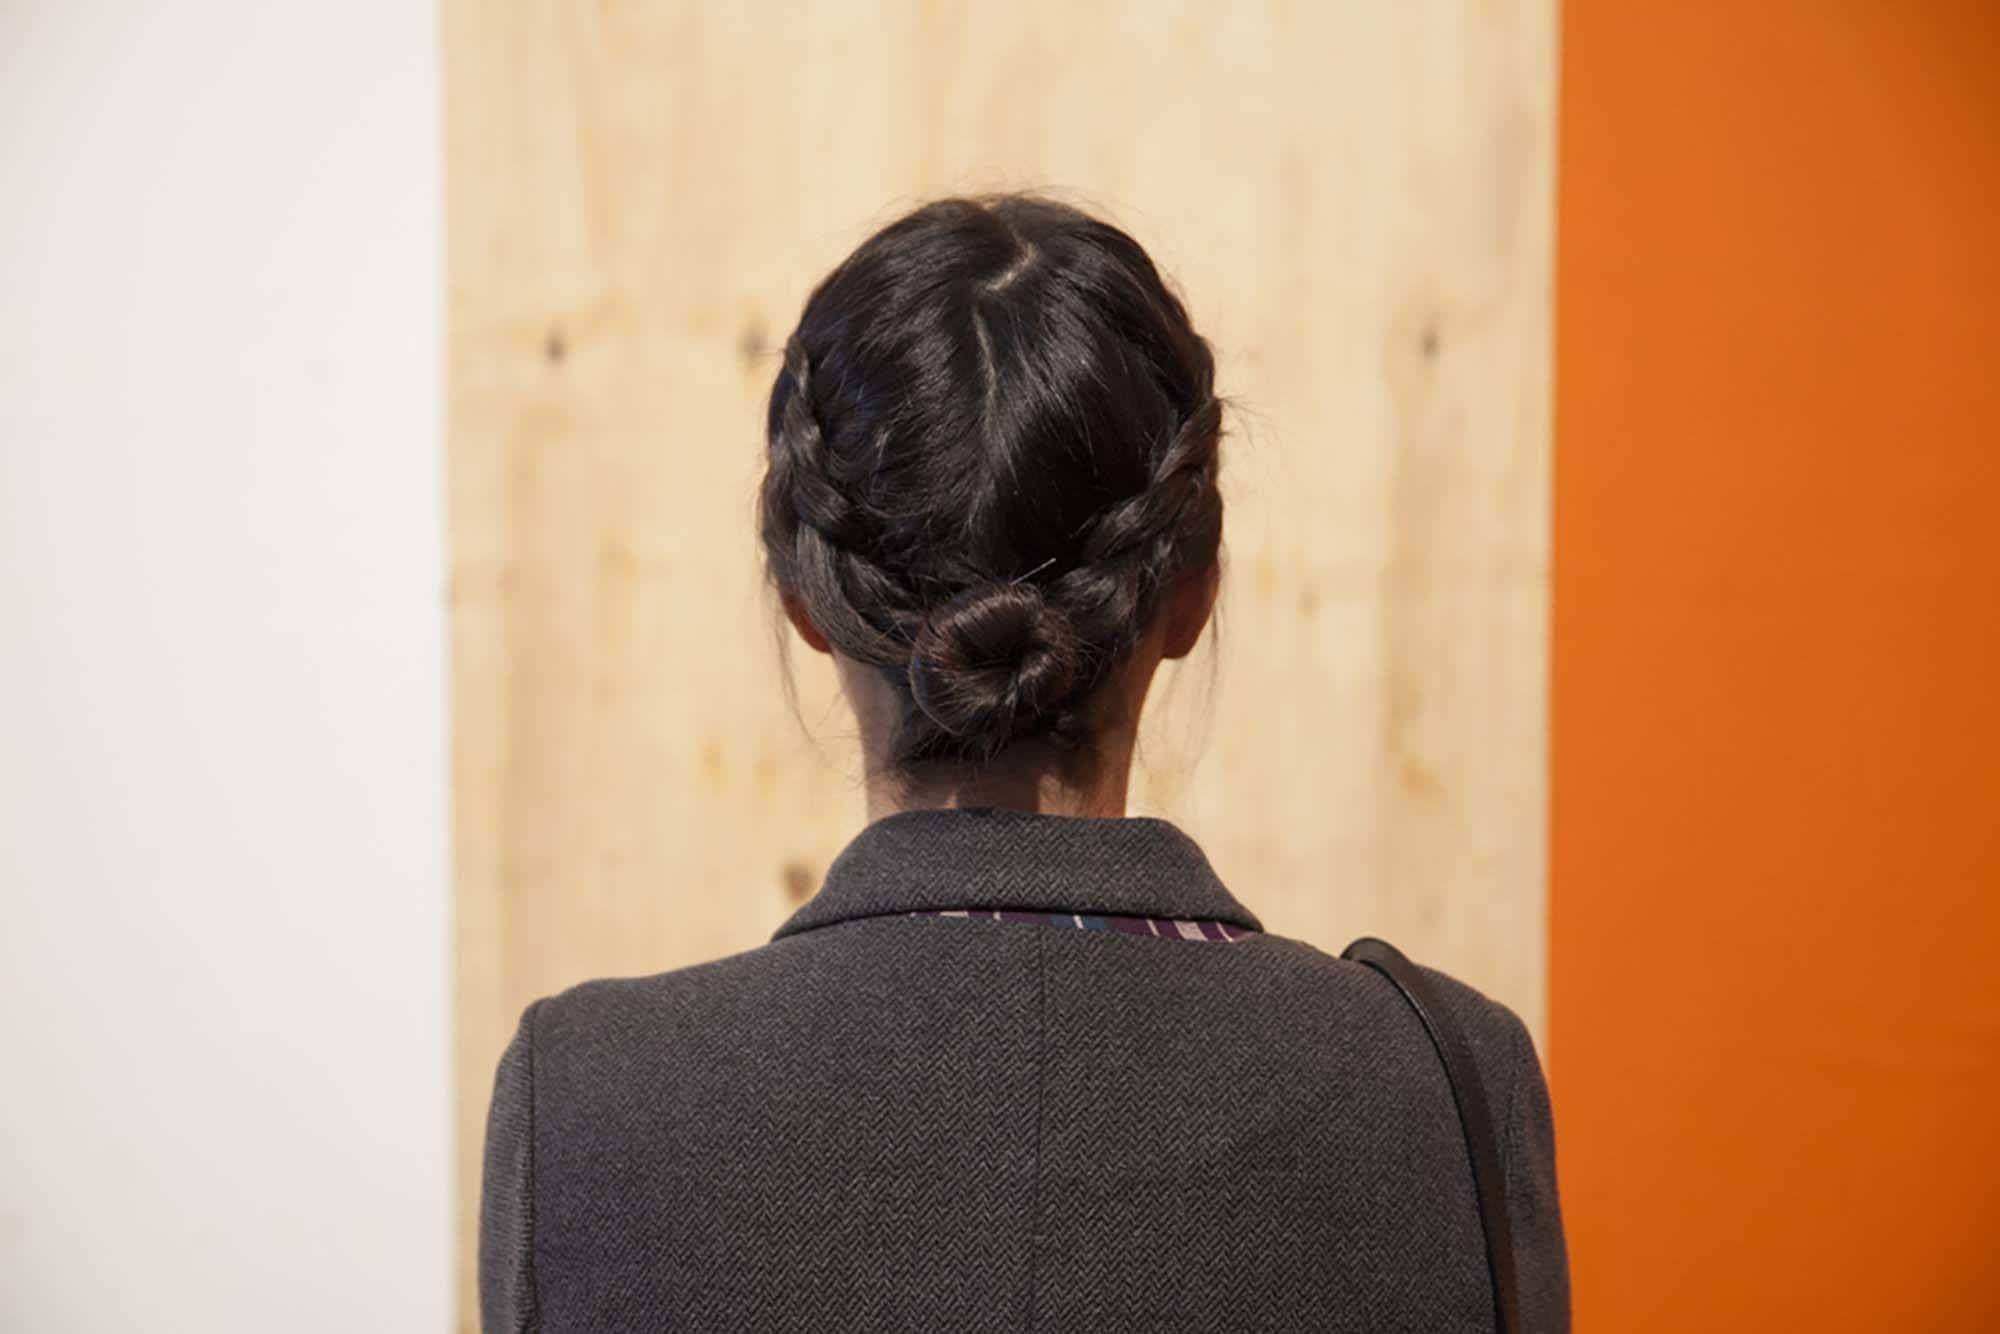 back shot of model with braided low bun updo hairstyle, wearing black jacket